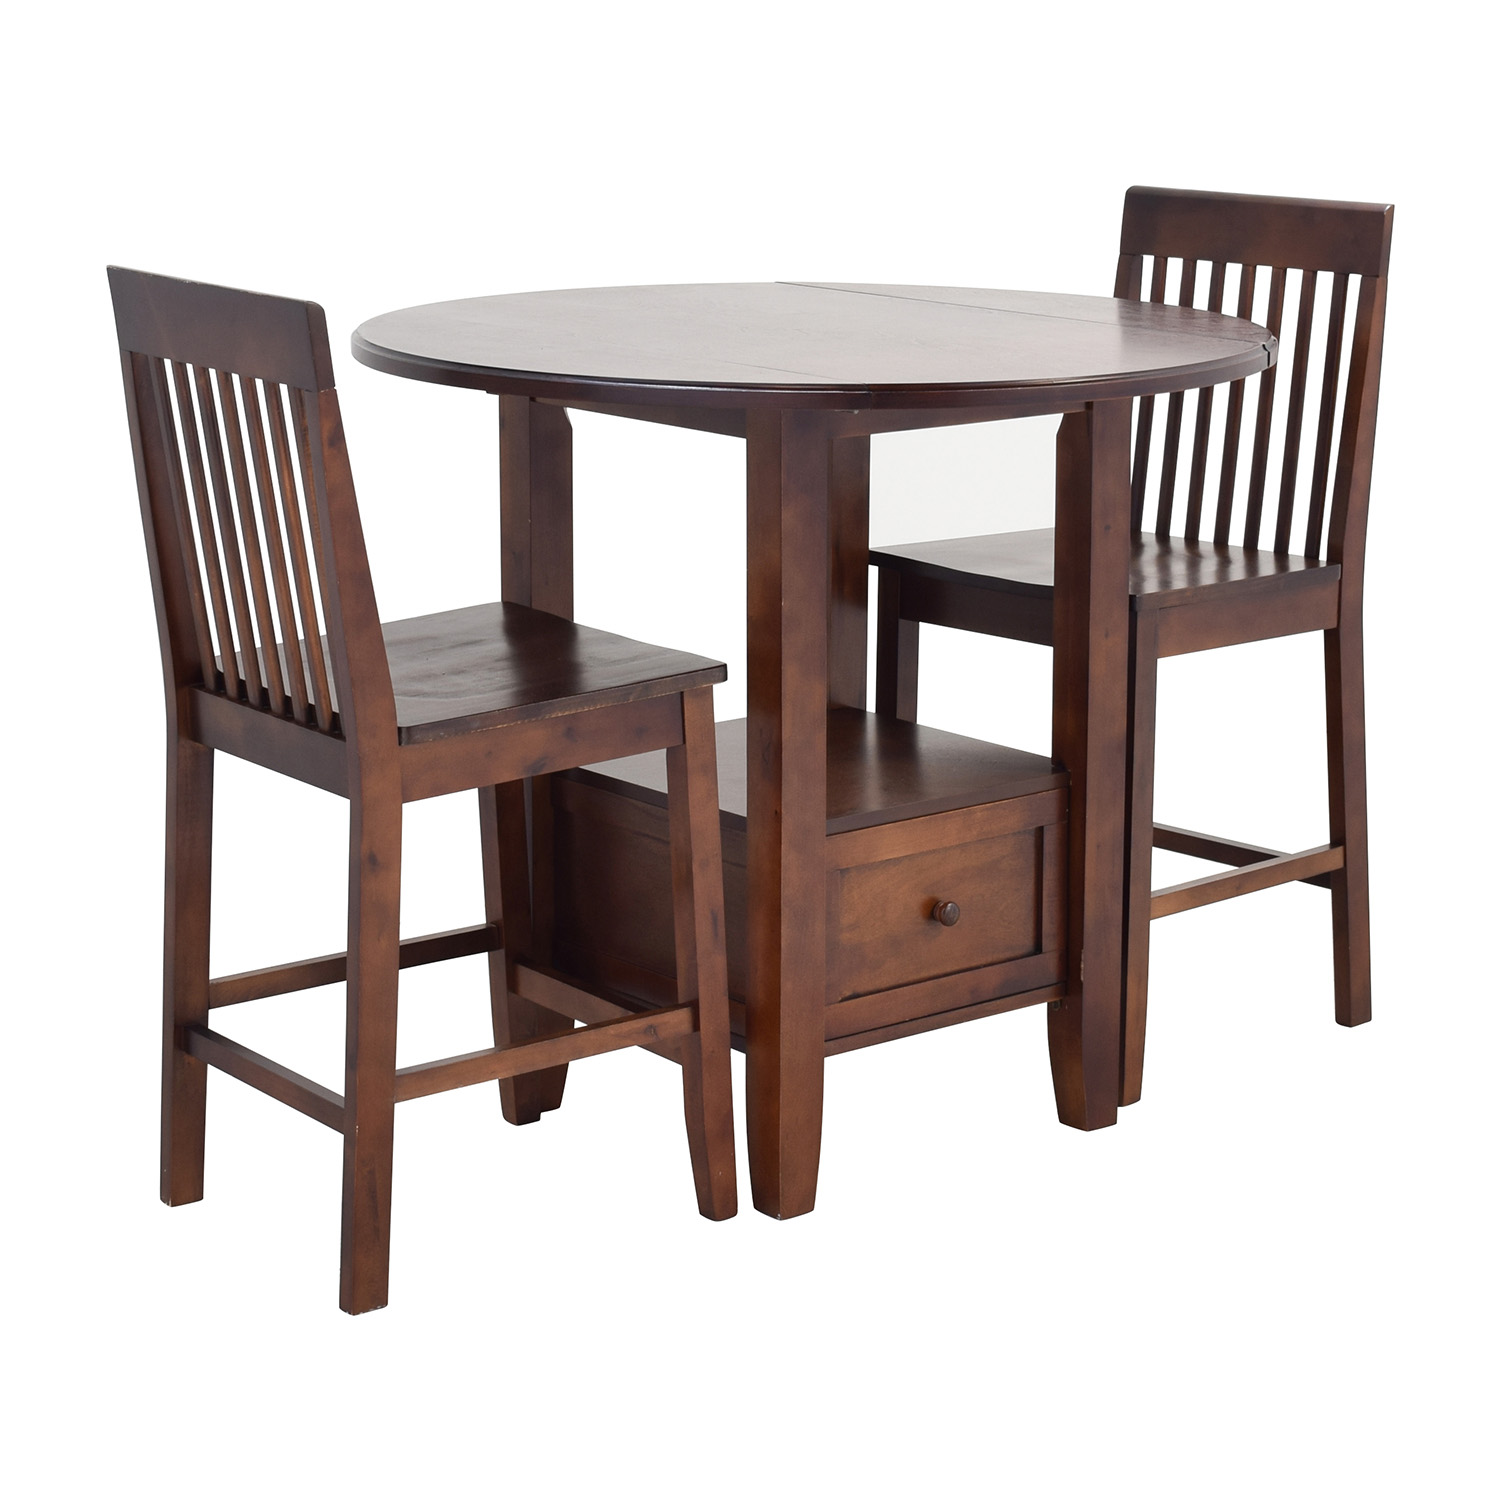 Pub Table With Chairs 61 Off Threshold Threshold Pub Table Set Tables